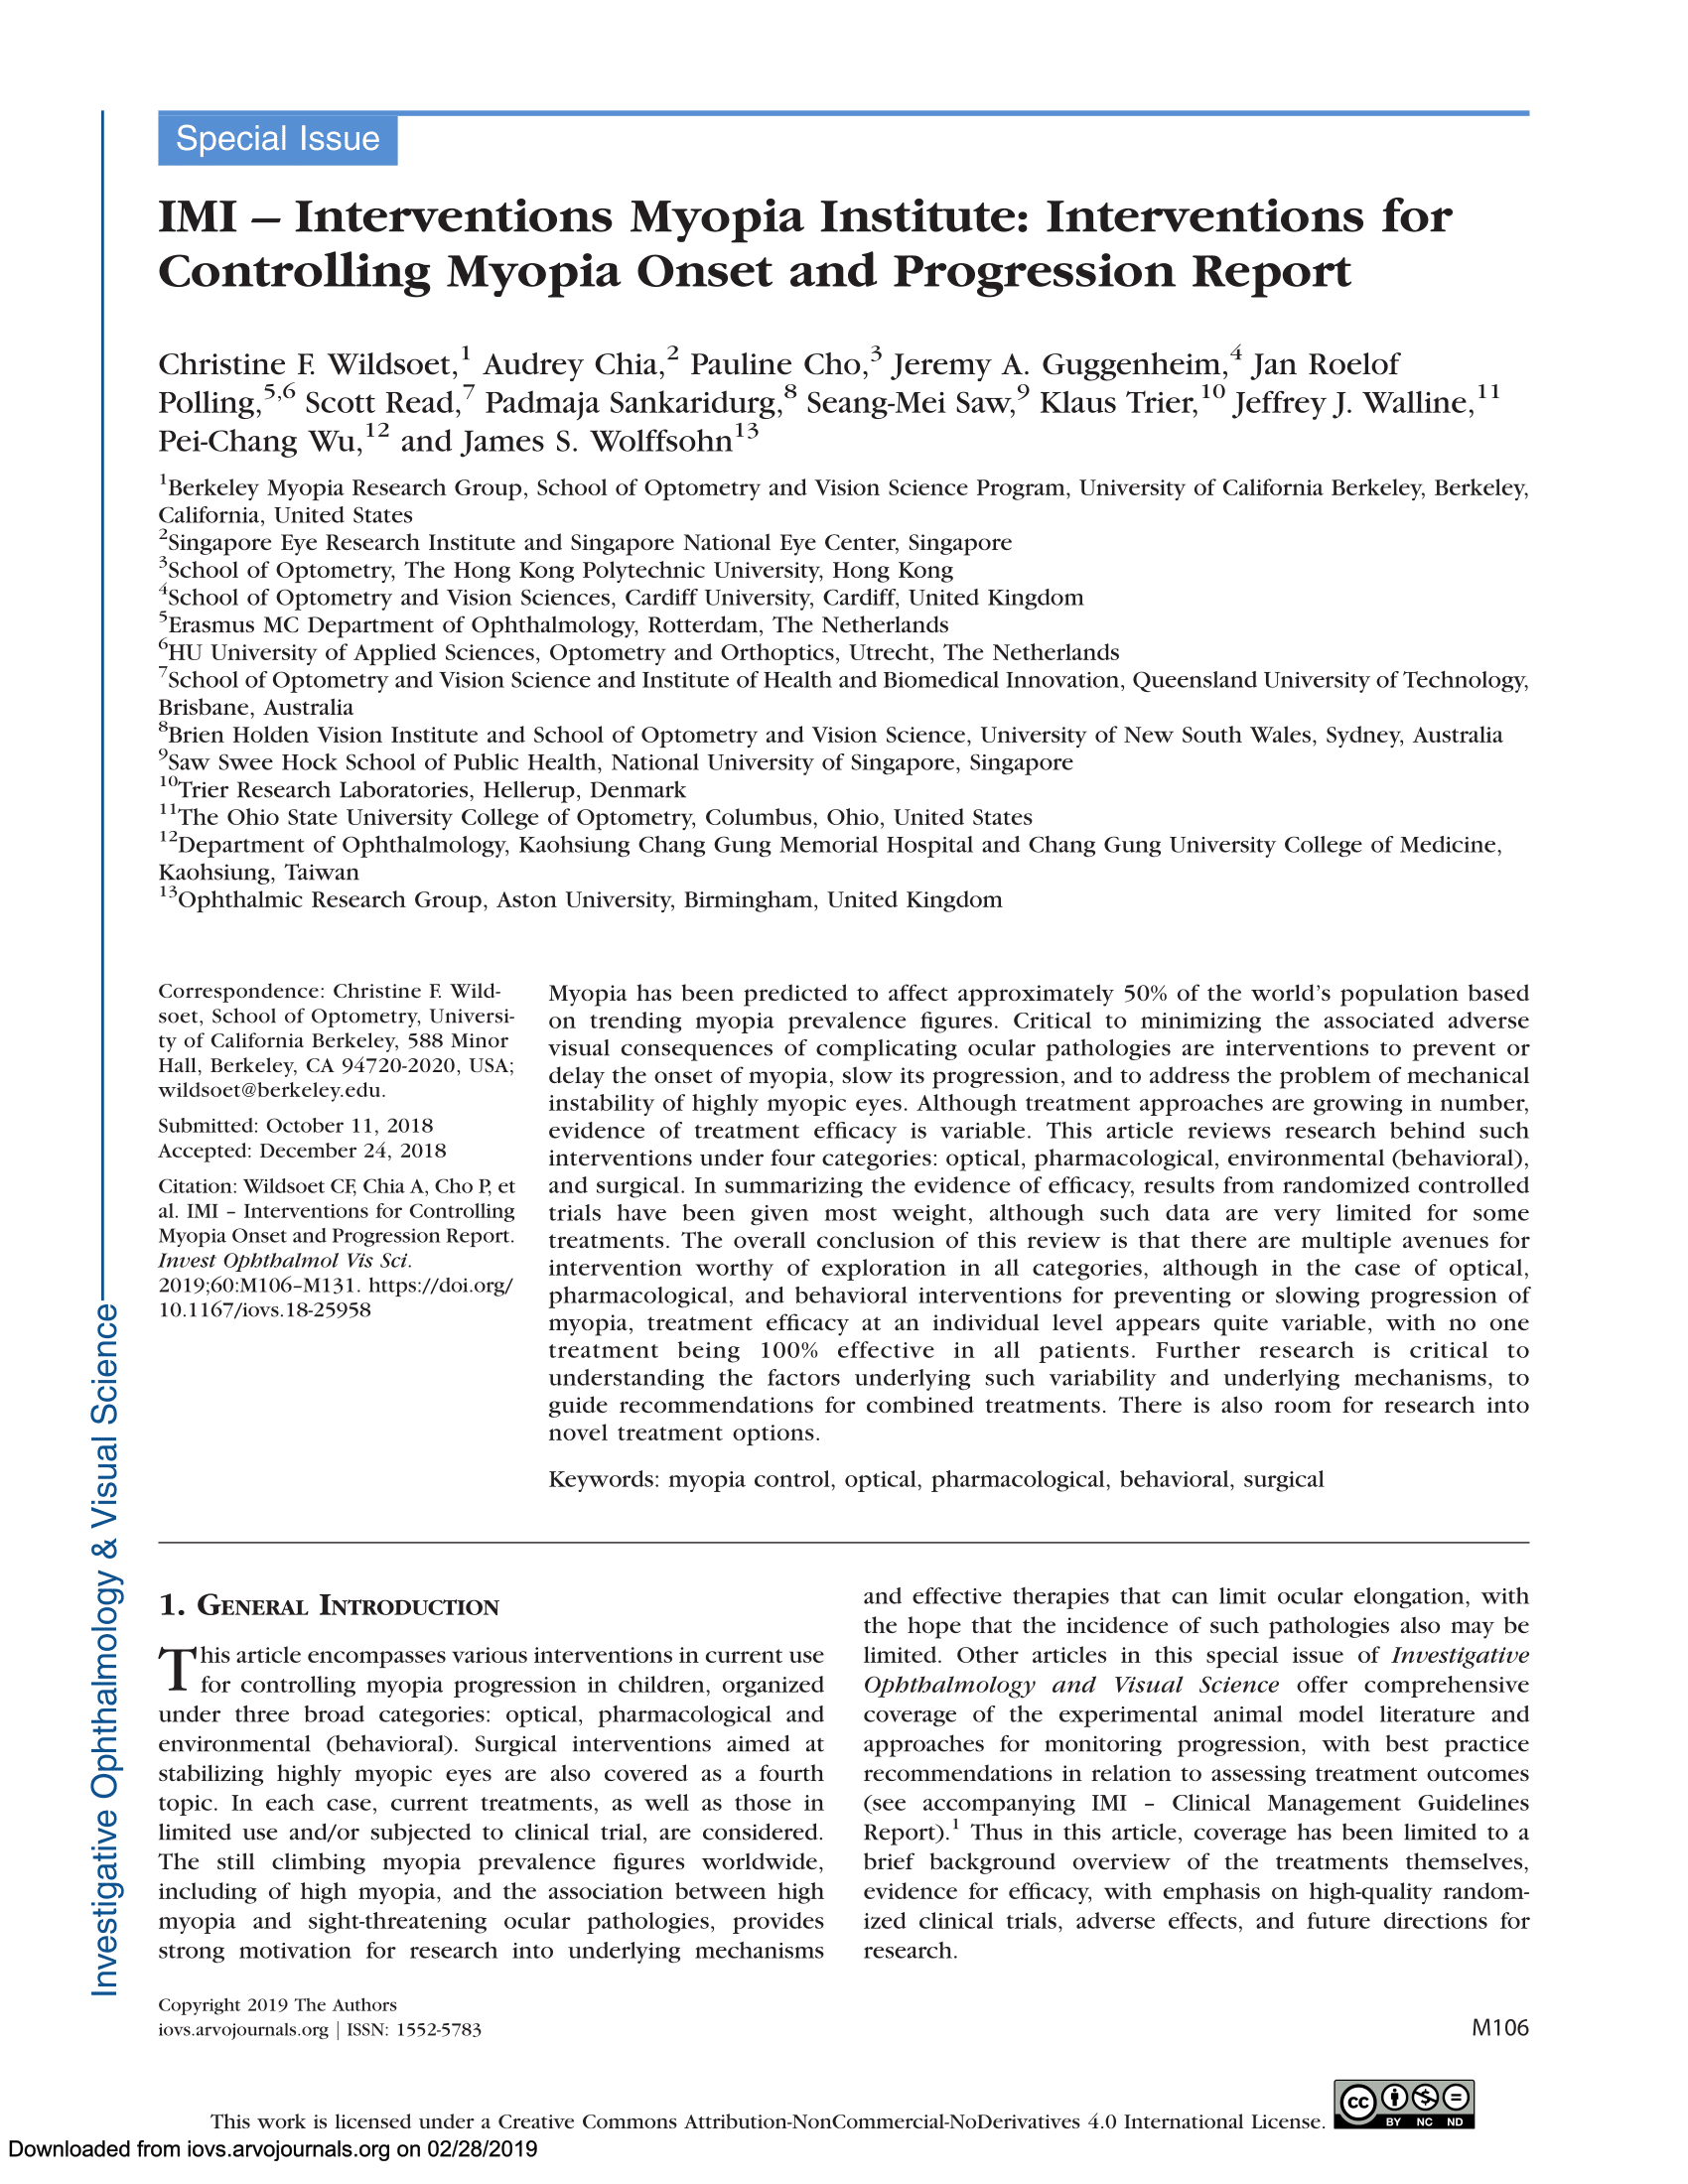 IMI – Interventions Myopia Institute- Interventions for Controlling Myopia Onset and Progression Report-01